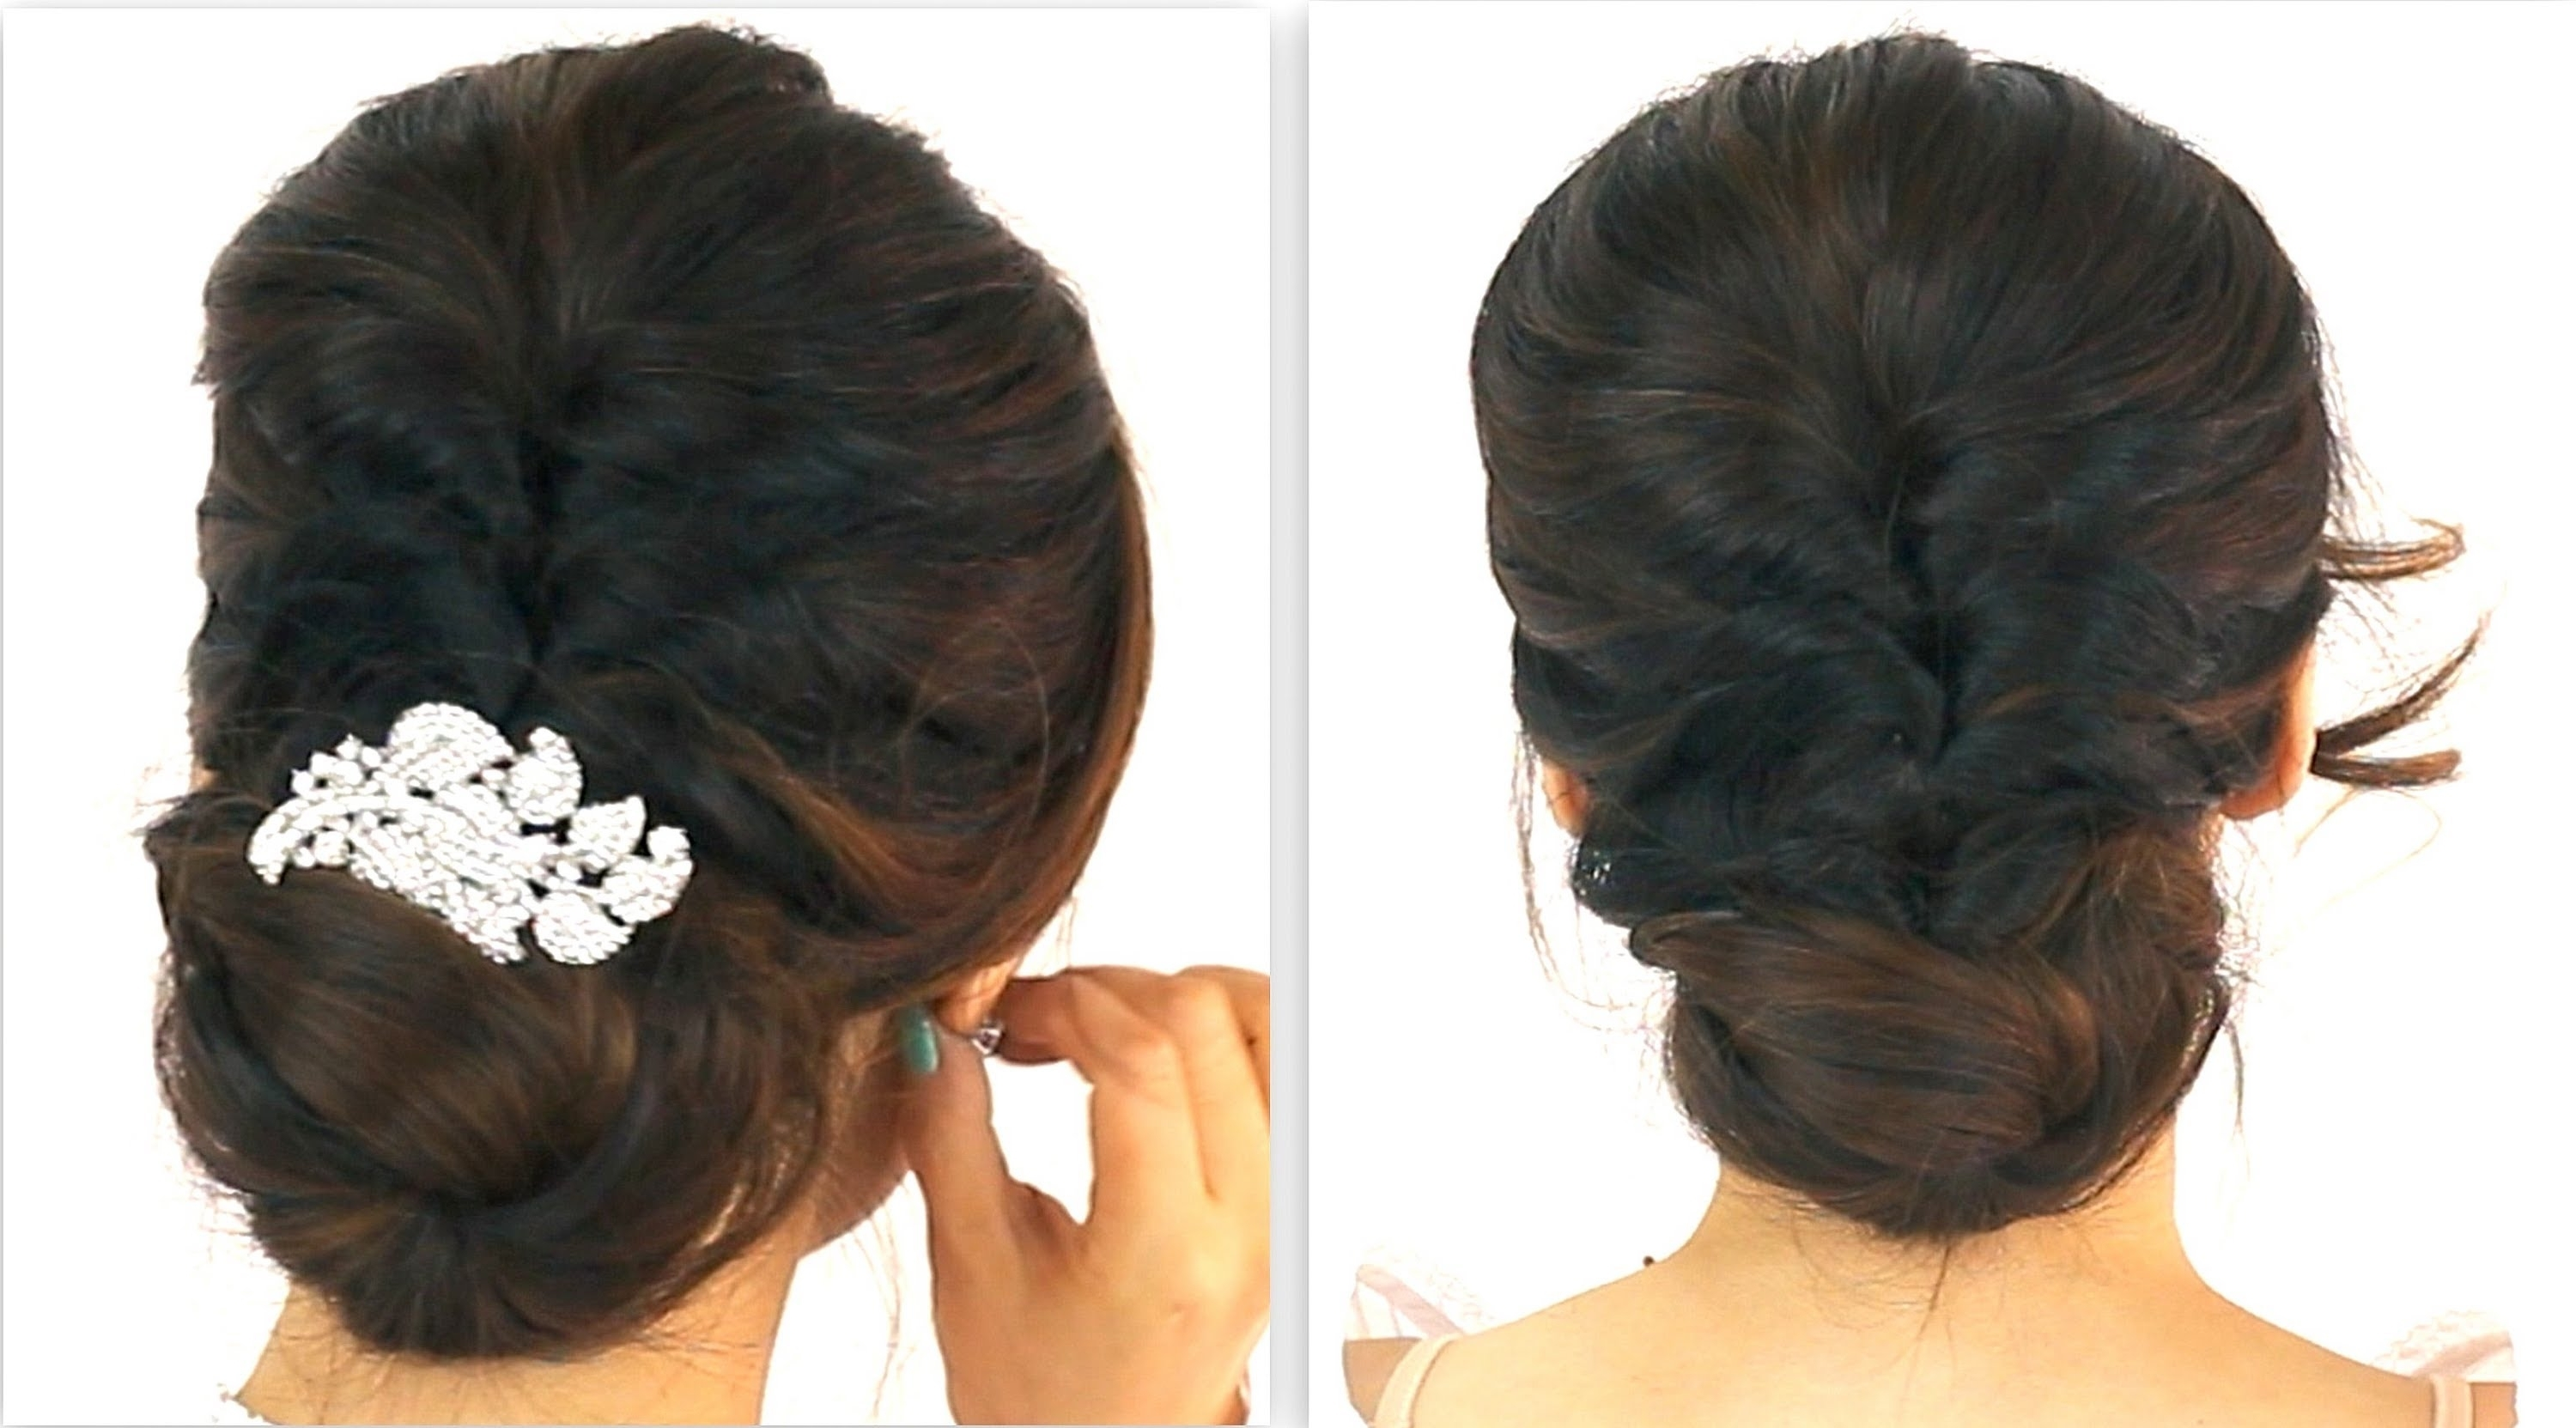 Up Hairstyles For Long Hair Updo Wedding Unbelievable In A Bun Easy Throughout Simple Hair Updo Hairstyles (View 15 of 15)